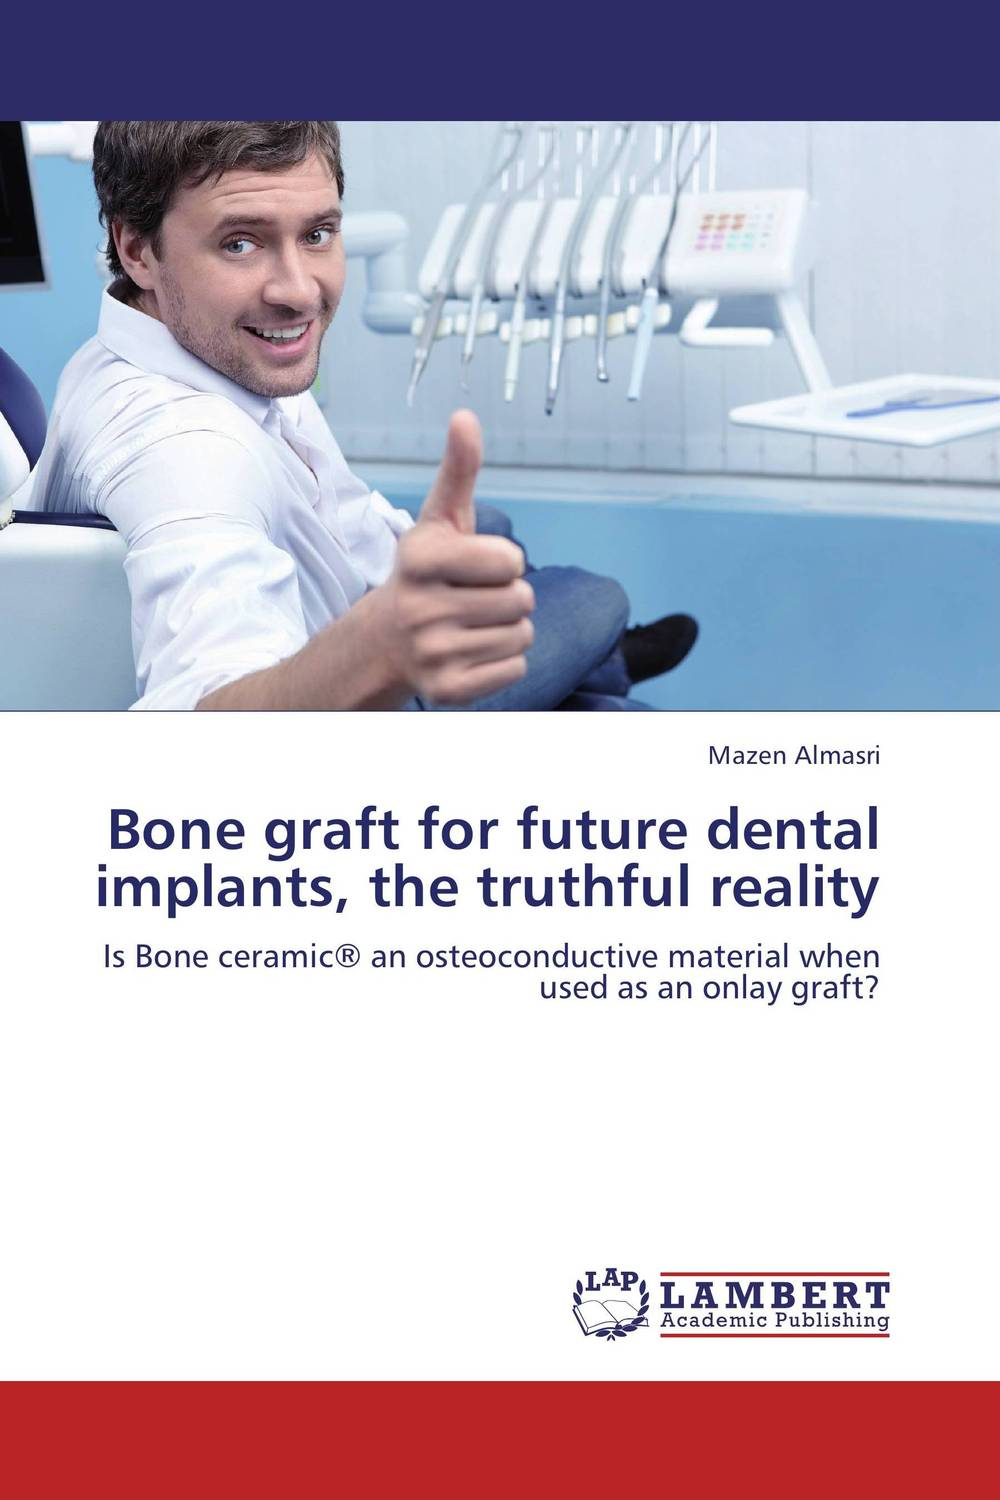 Bone graft for future dental implants, the truthful reality esthetics in implant dentistry